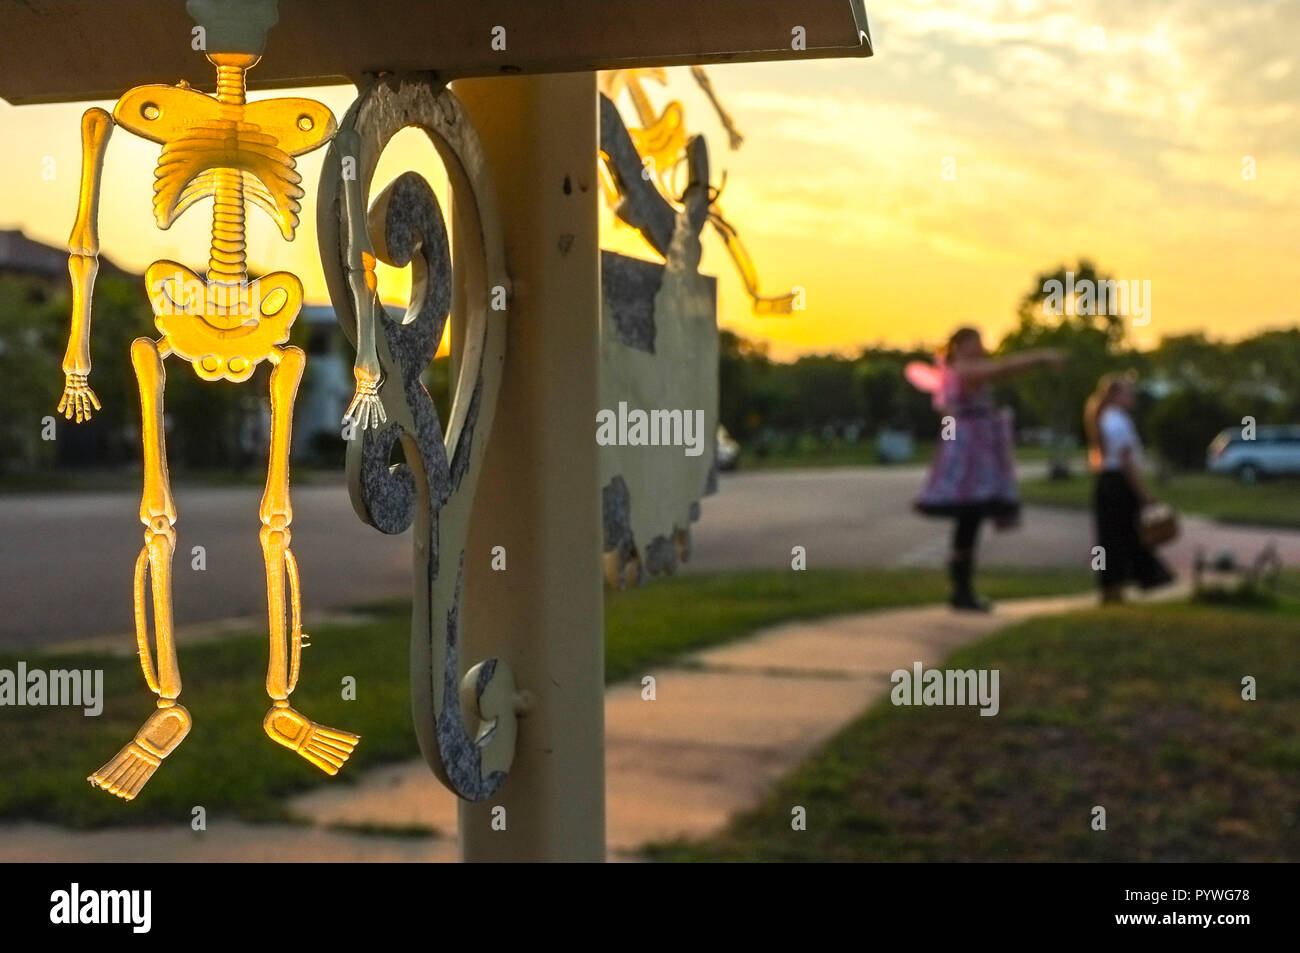 Darwin, Australia. 31st Oct, 2018. Children walk by the Halloween decorations in Darwin, Northern Territory, Australia - 2018.10.31 - Credit: Regis Martin/Alamy Live News Stock Photo